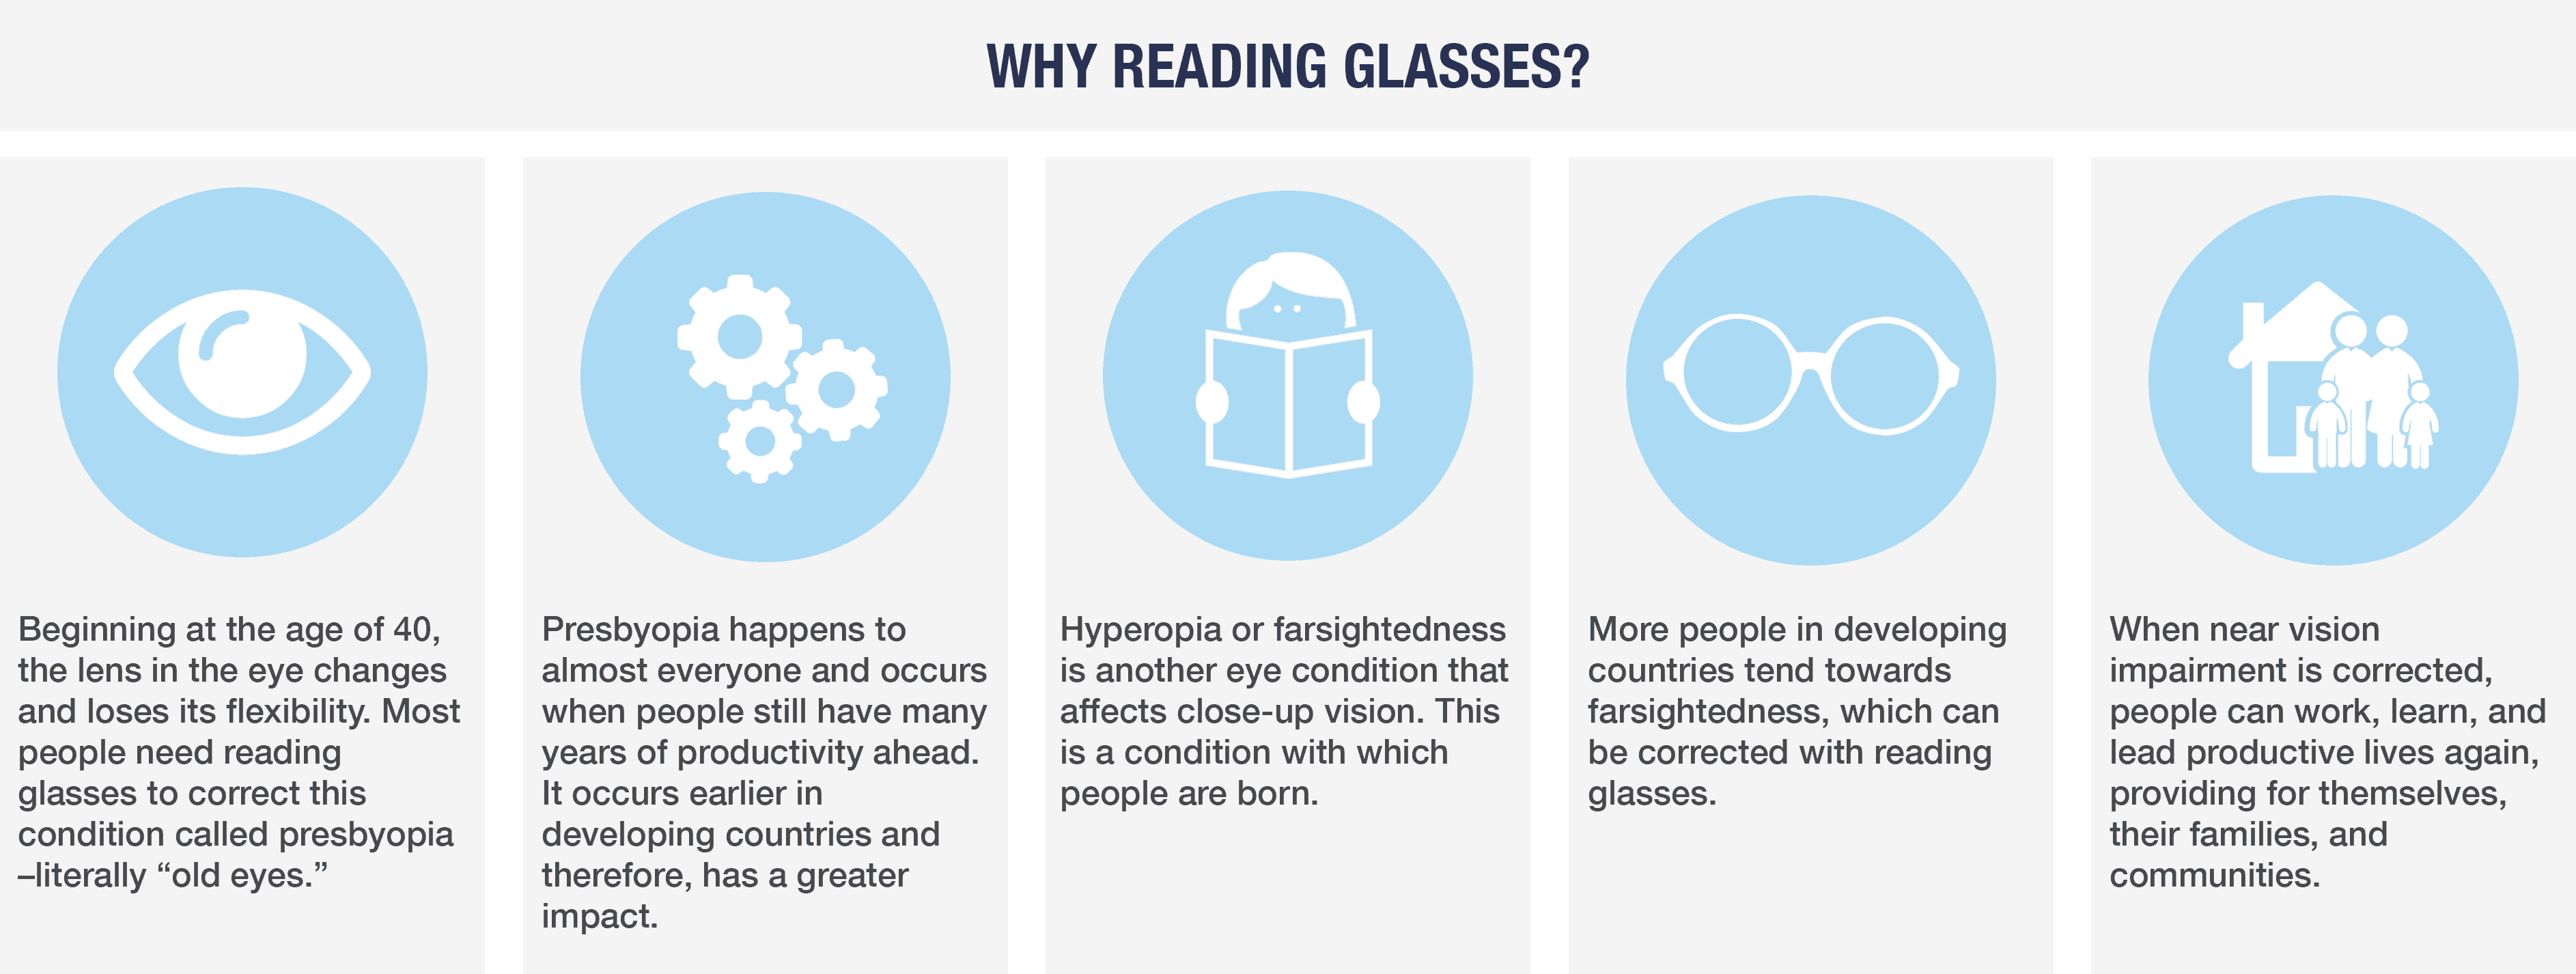 Needs and Benefits of Glasses